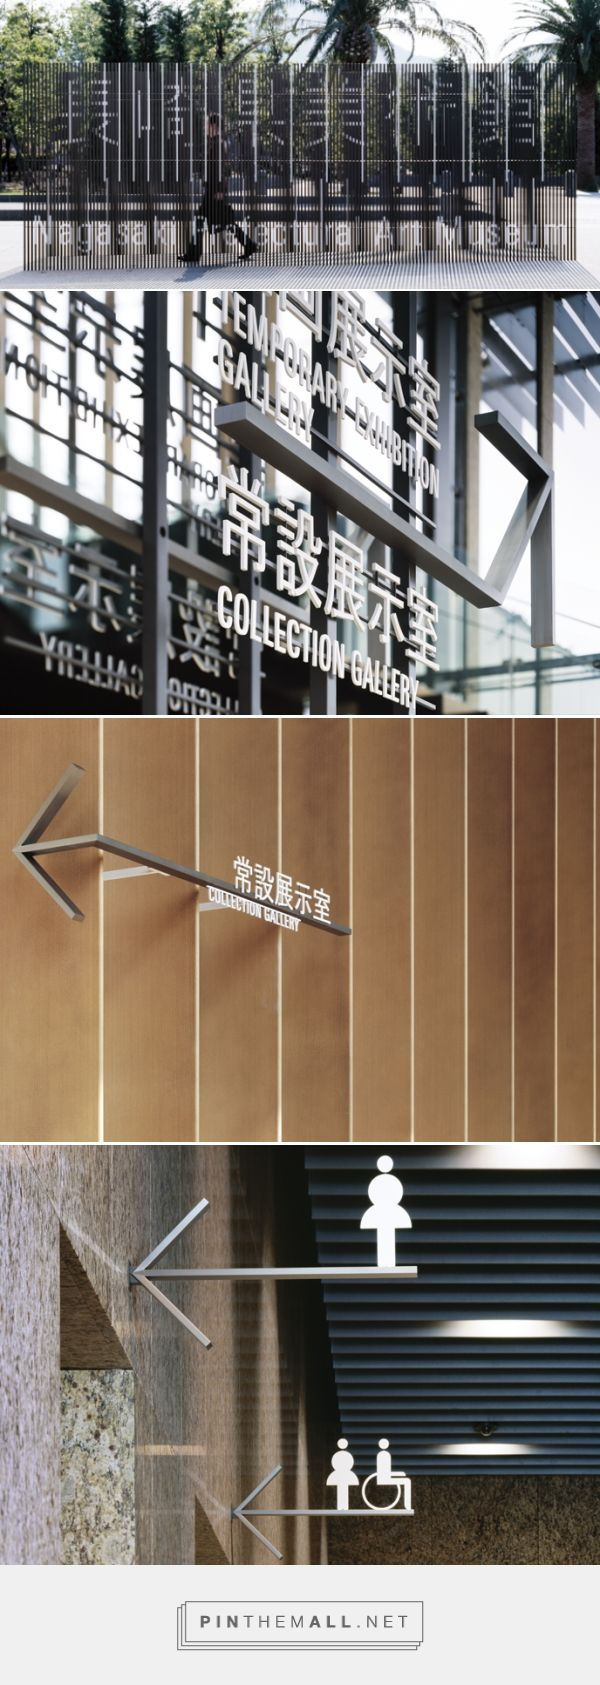 The Nagasaki Prefectural Art Museum Signage - Create Laboratory Limited - created via https://pinthemall.net